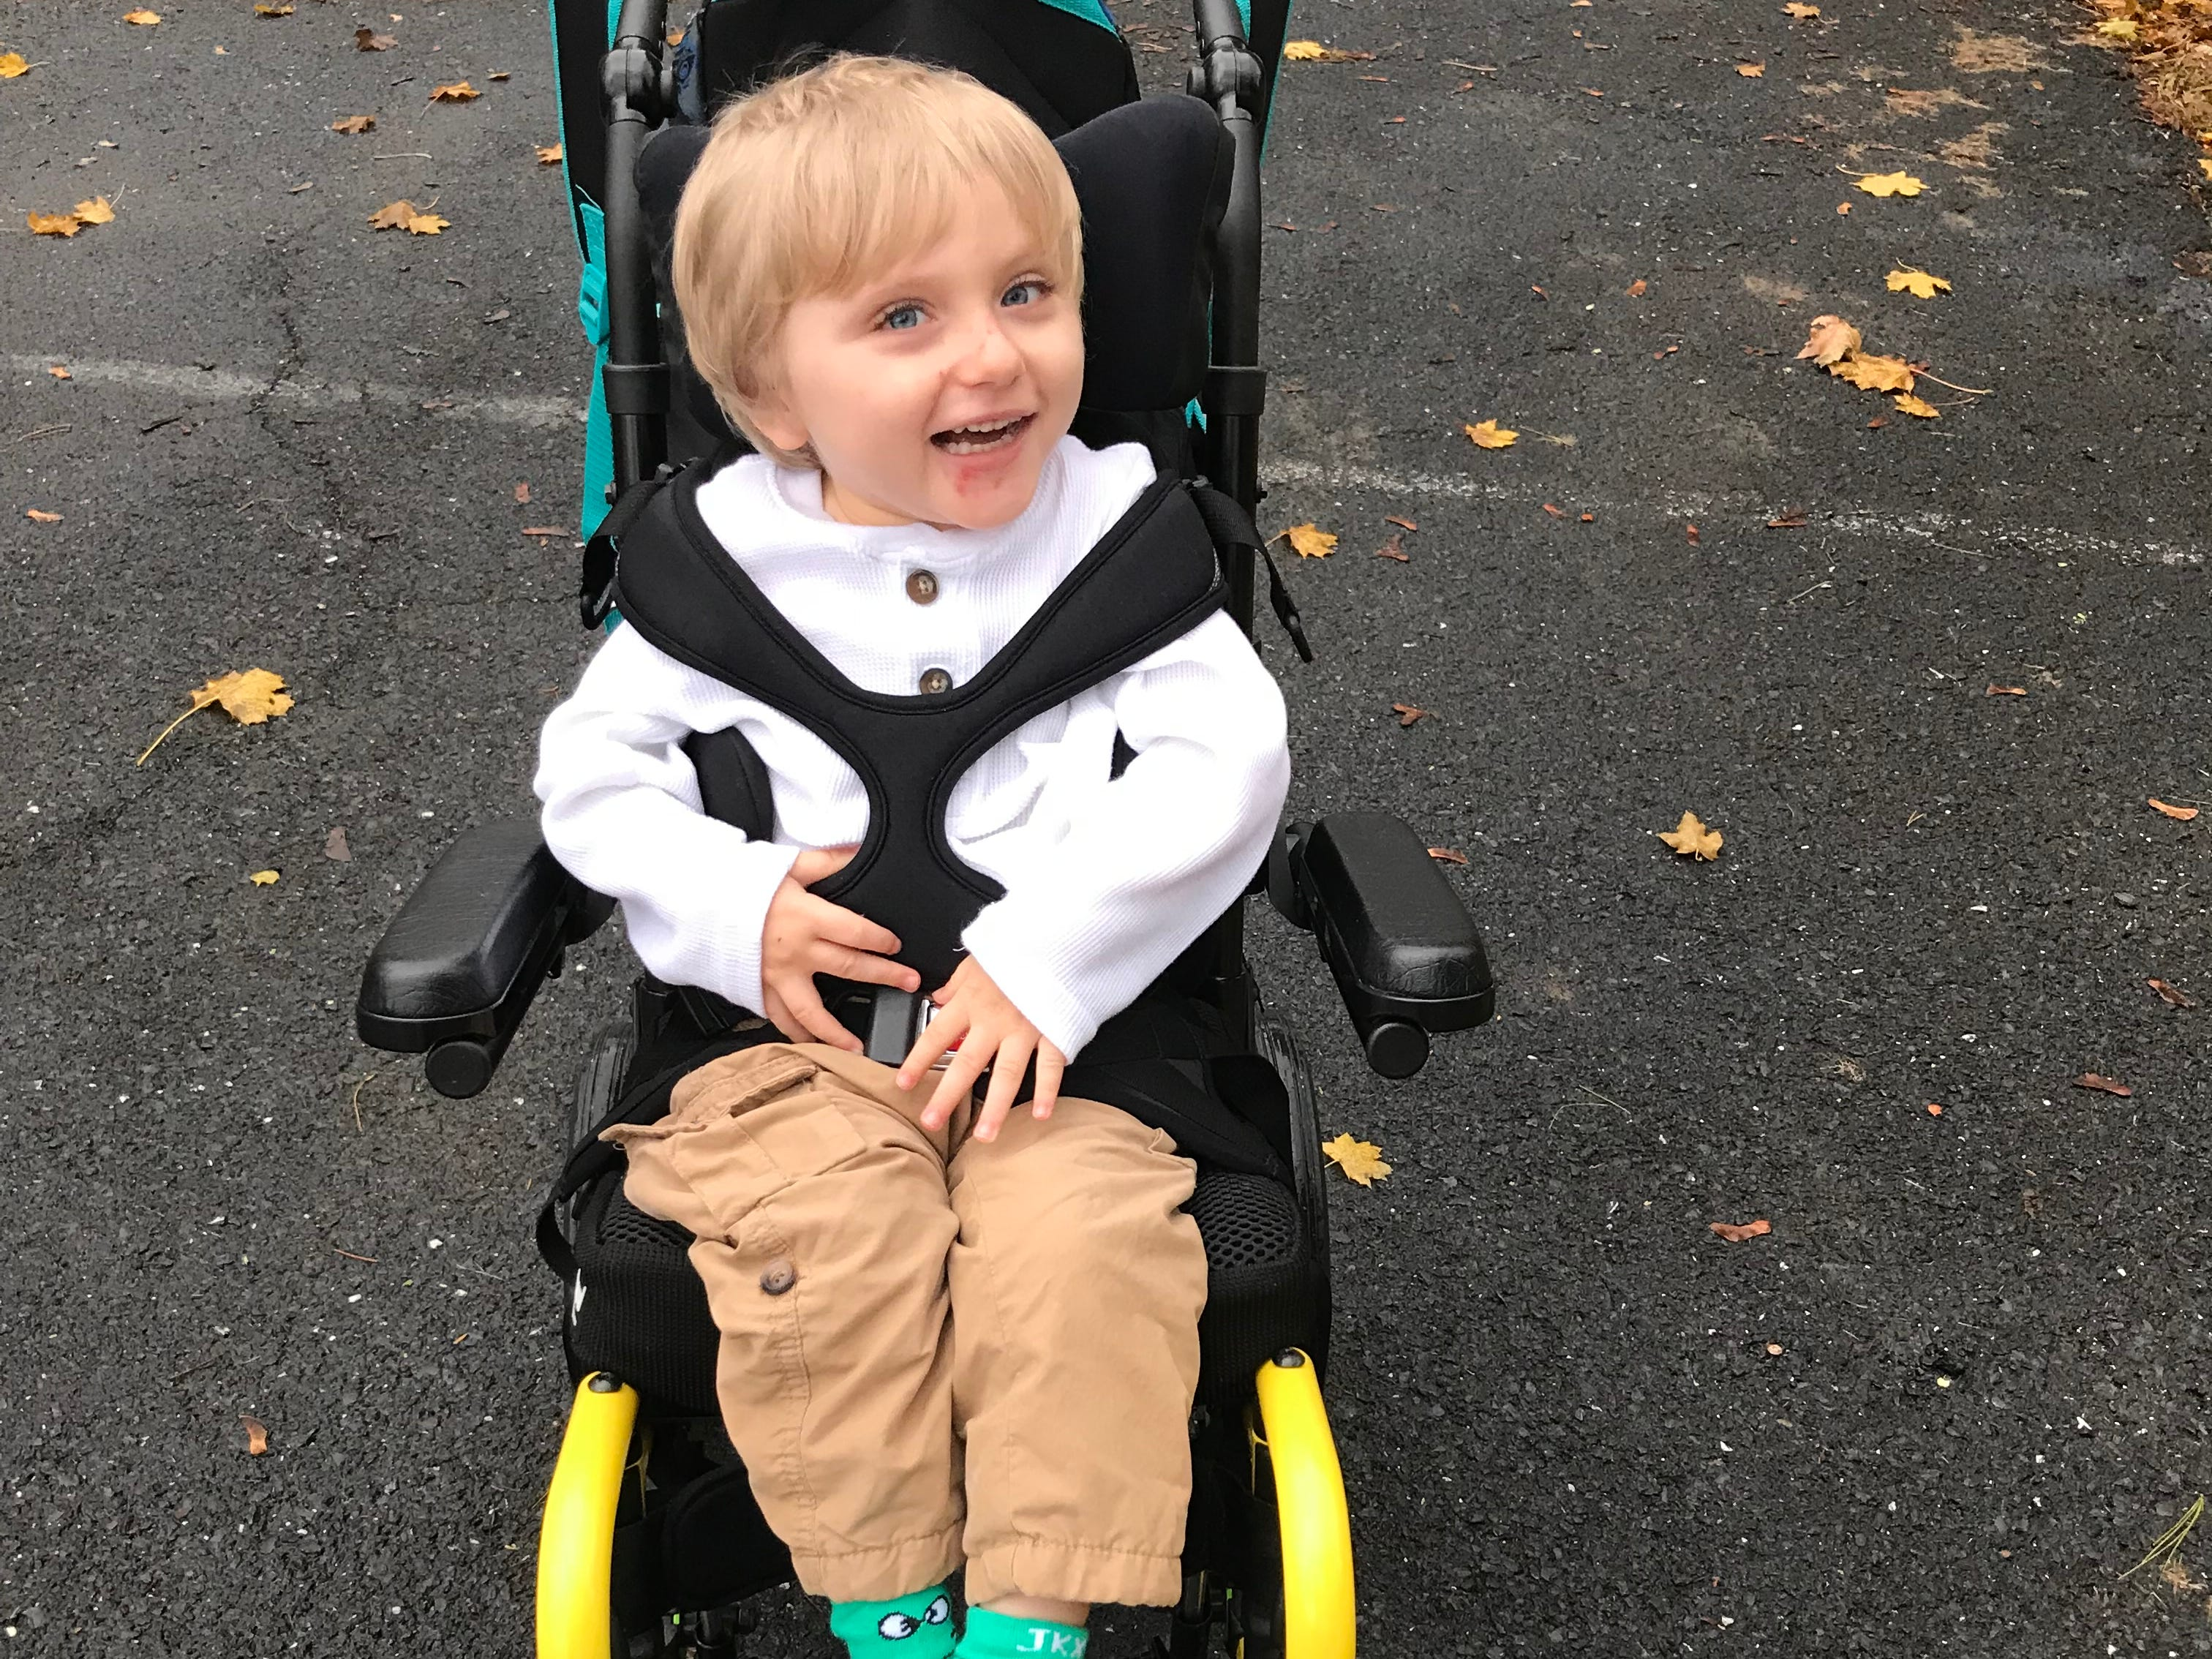 Carson Tugman, 3, of Staunton, waiting for the school to Dixon Educational Center. Tugman suffers from a progressive neurodevelopmental disorder caused by a pathogenic variant of the MECP2 gene known as Rett Syndrome.